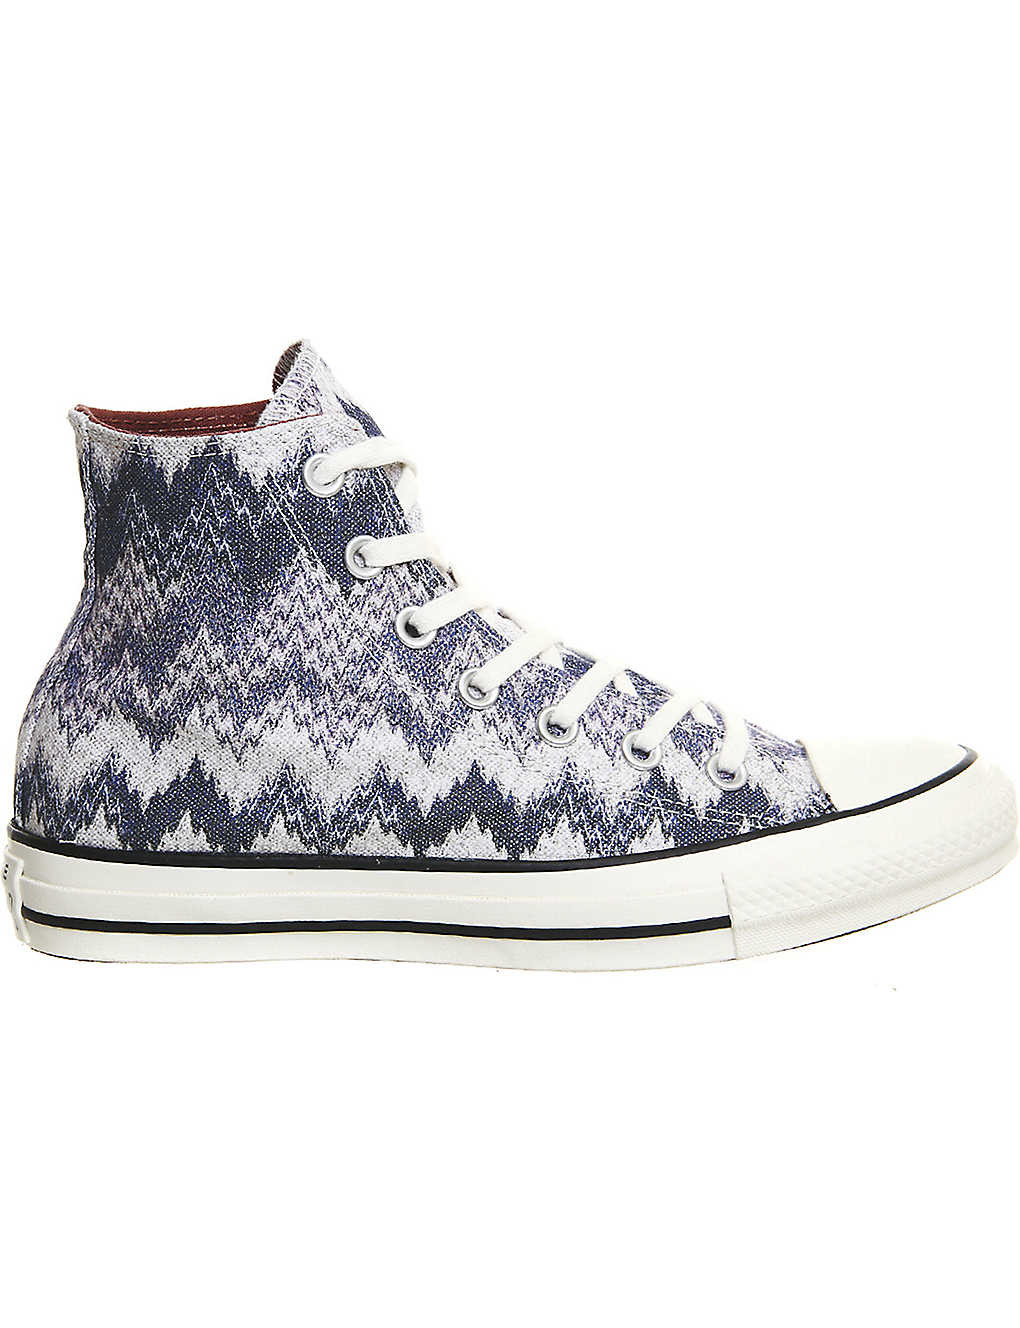 8ac464923ede CONVERSE - Chuck taylor x missoni all star high-top trainers ...